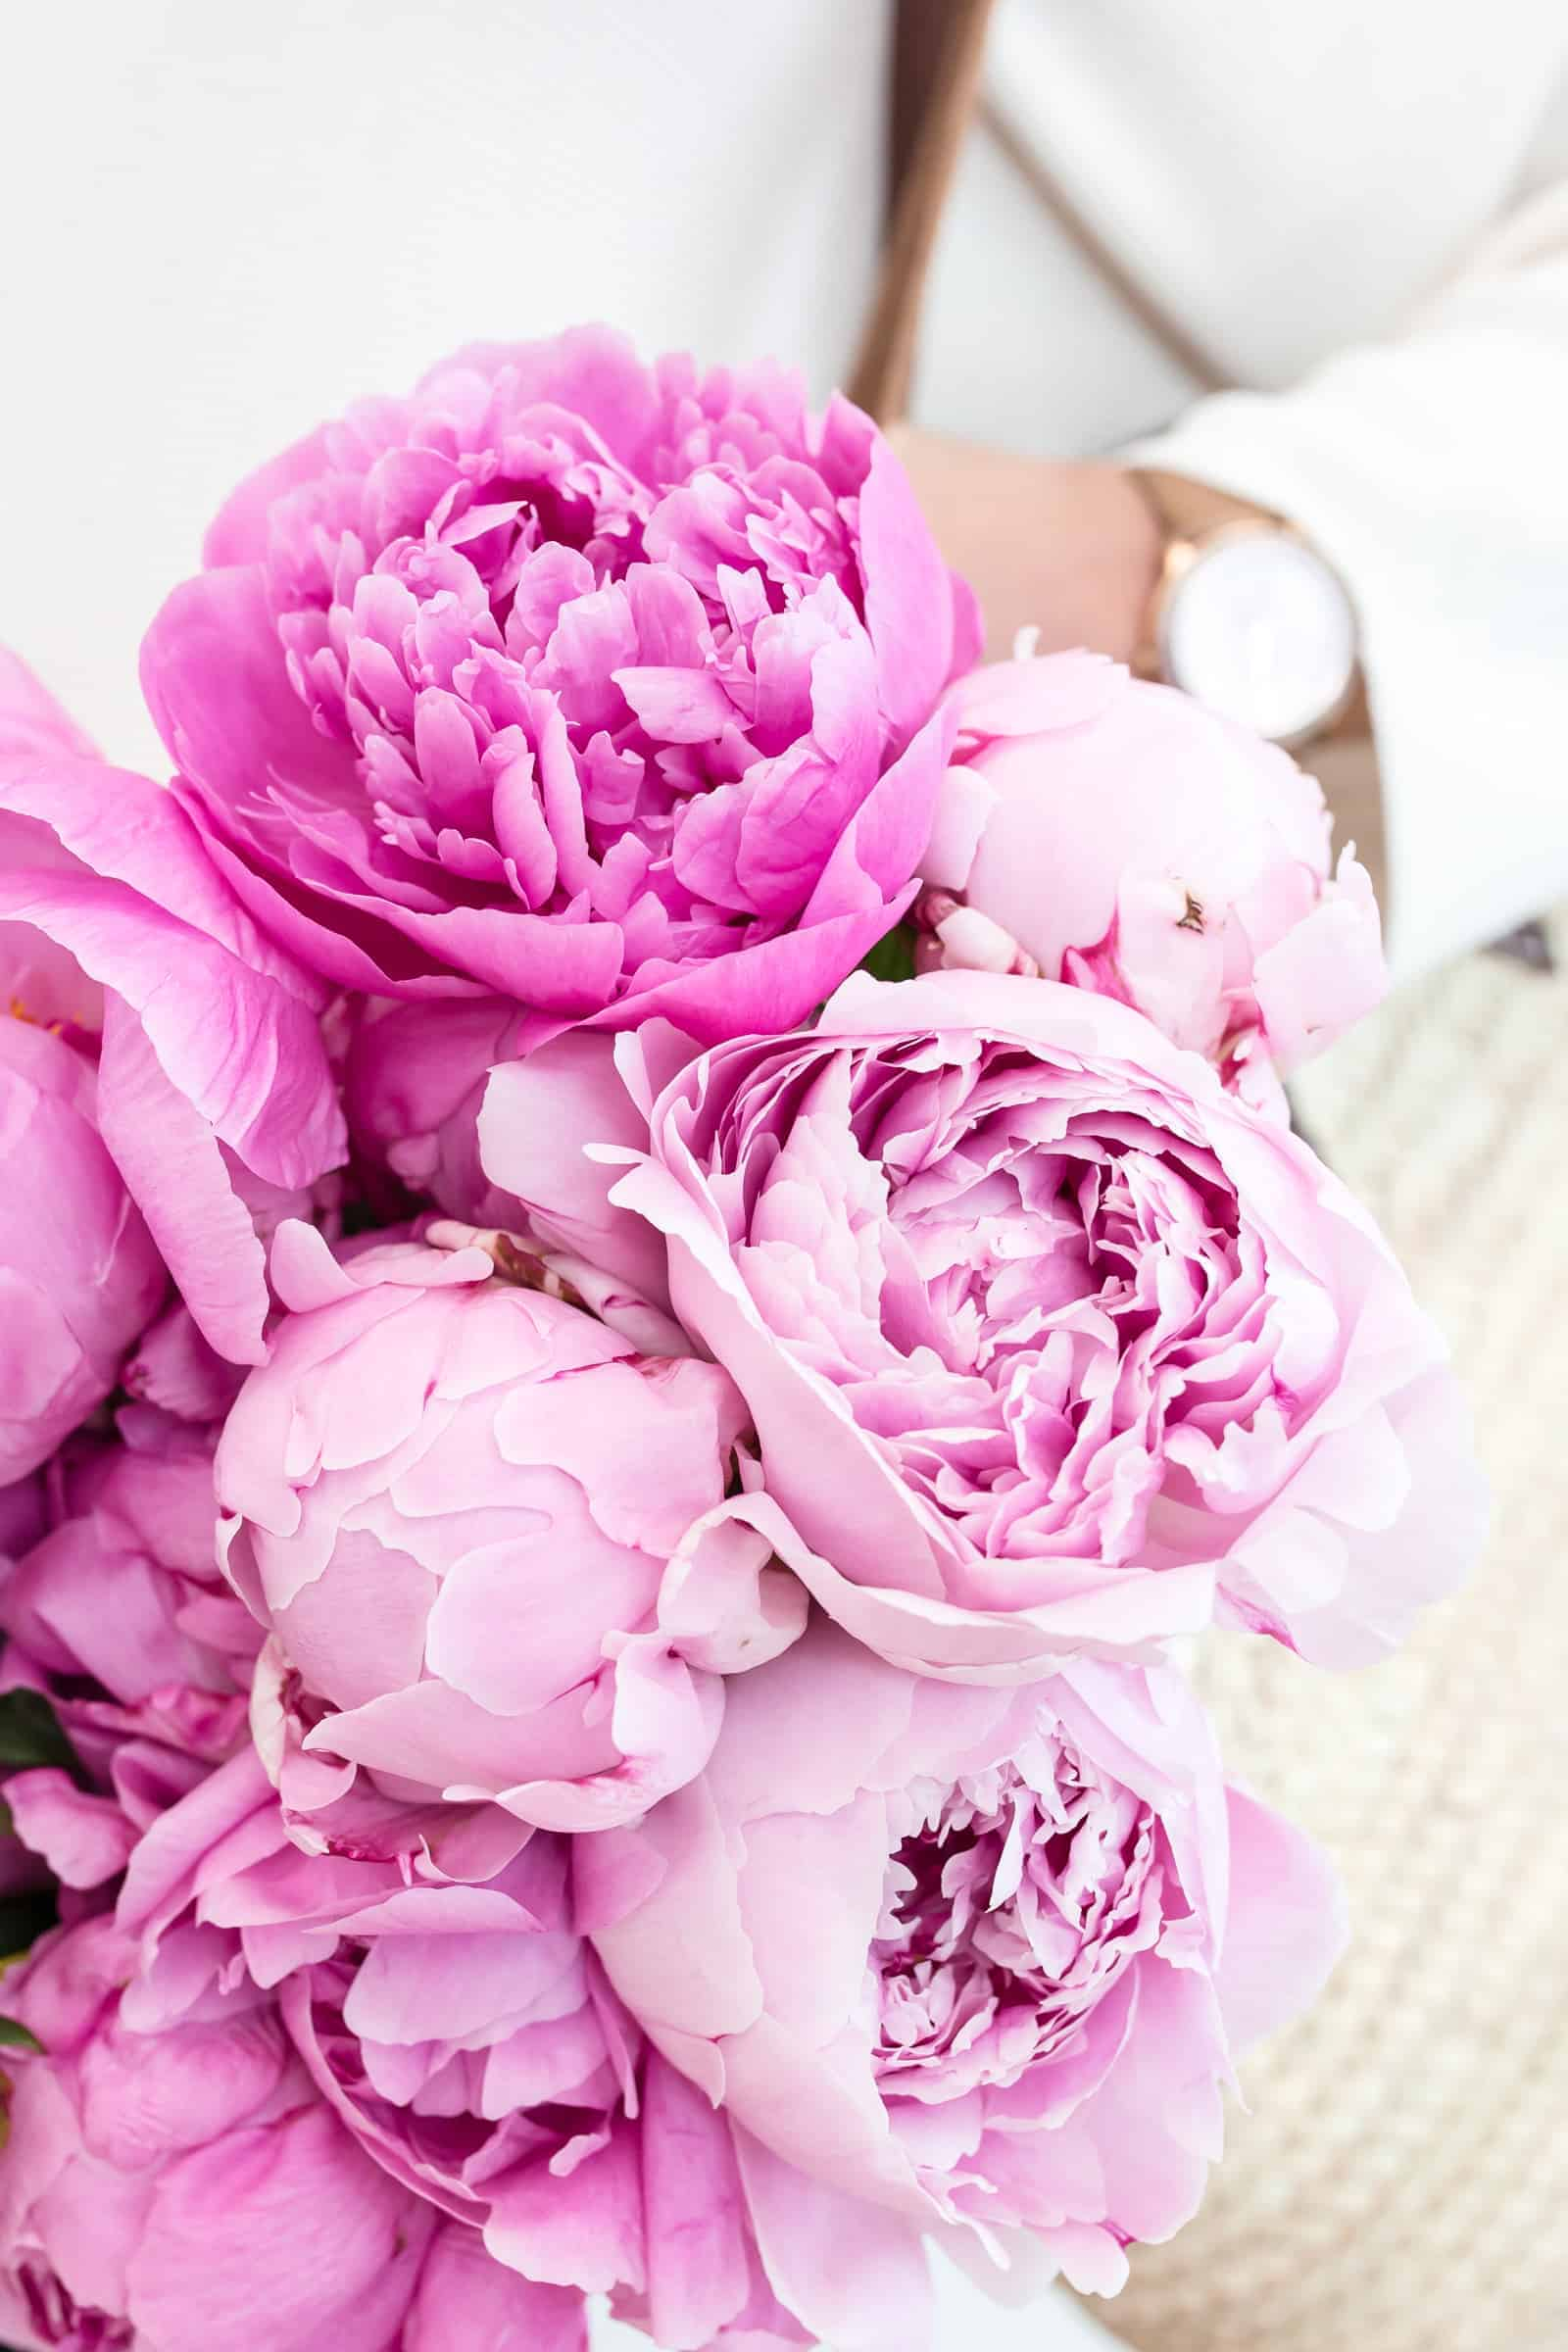 How to Grow Peonies for Fragrant Bouquets